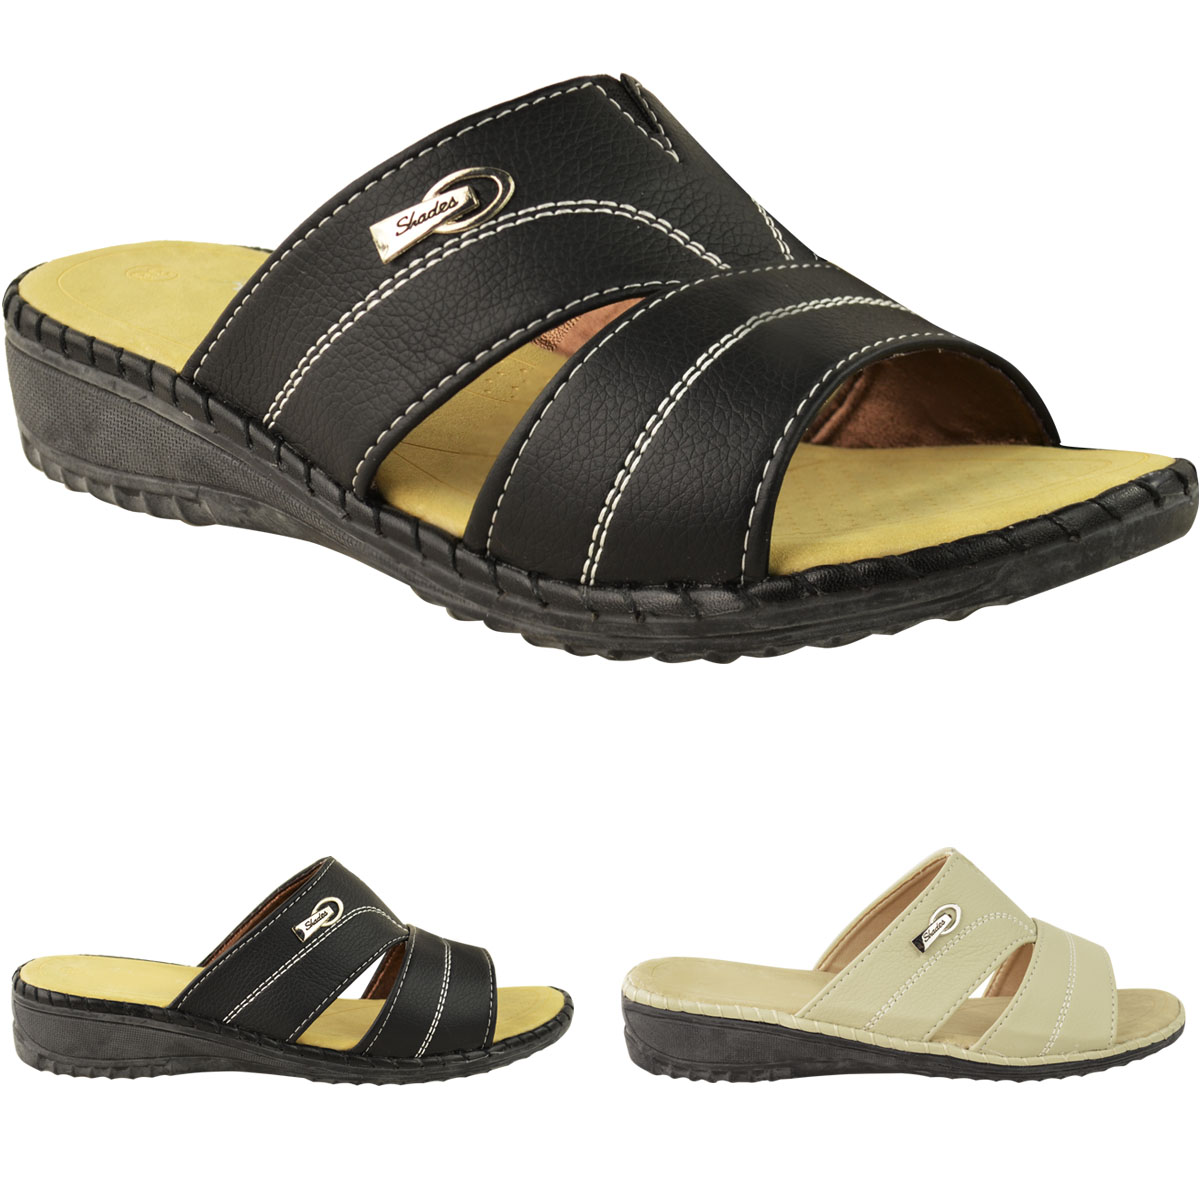 Ladies Wide Fit Sandals And Shoes Uk